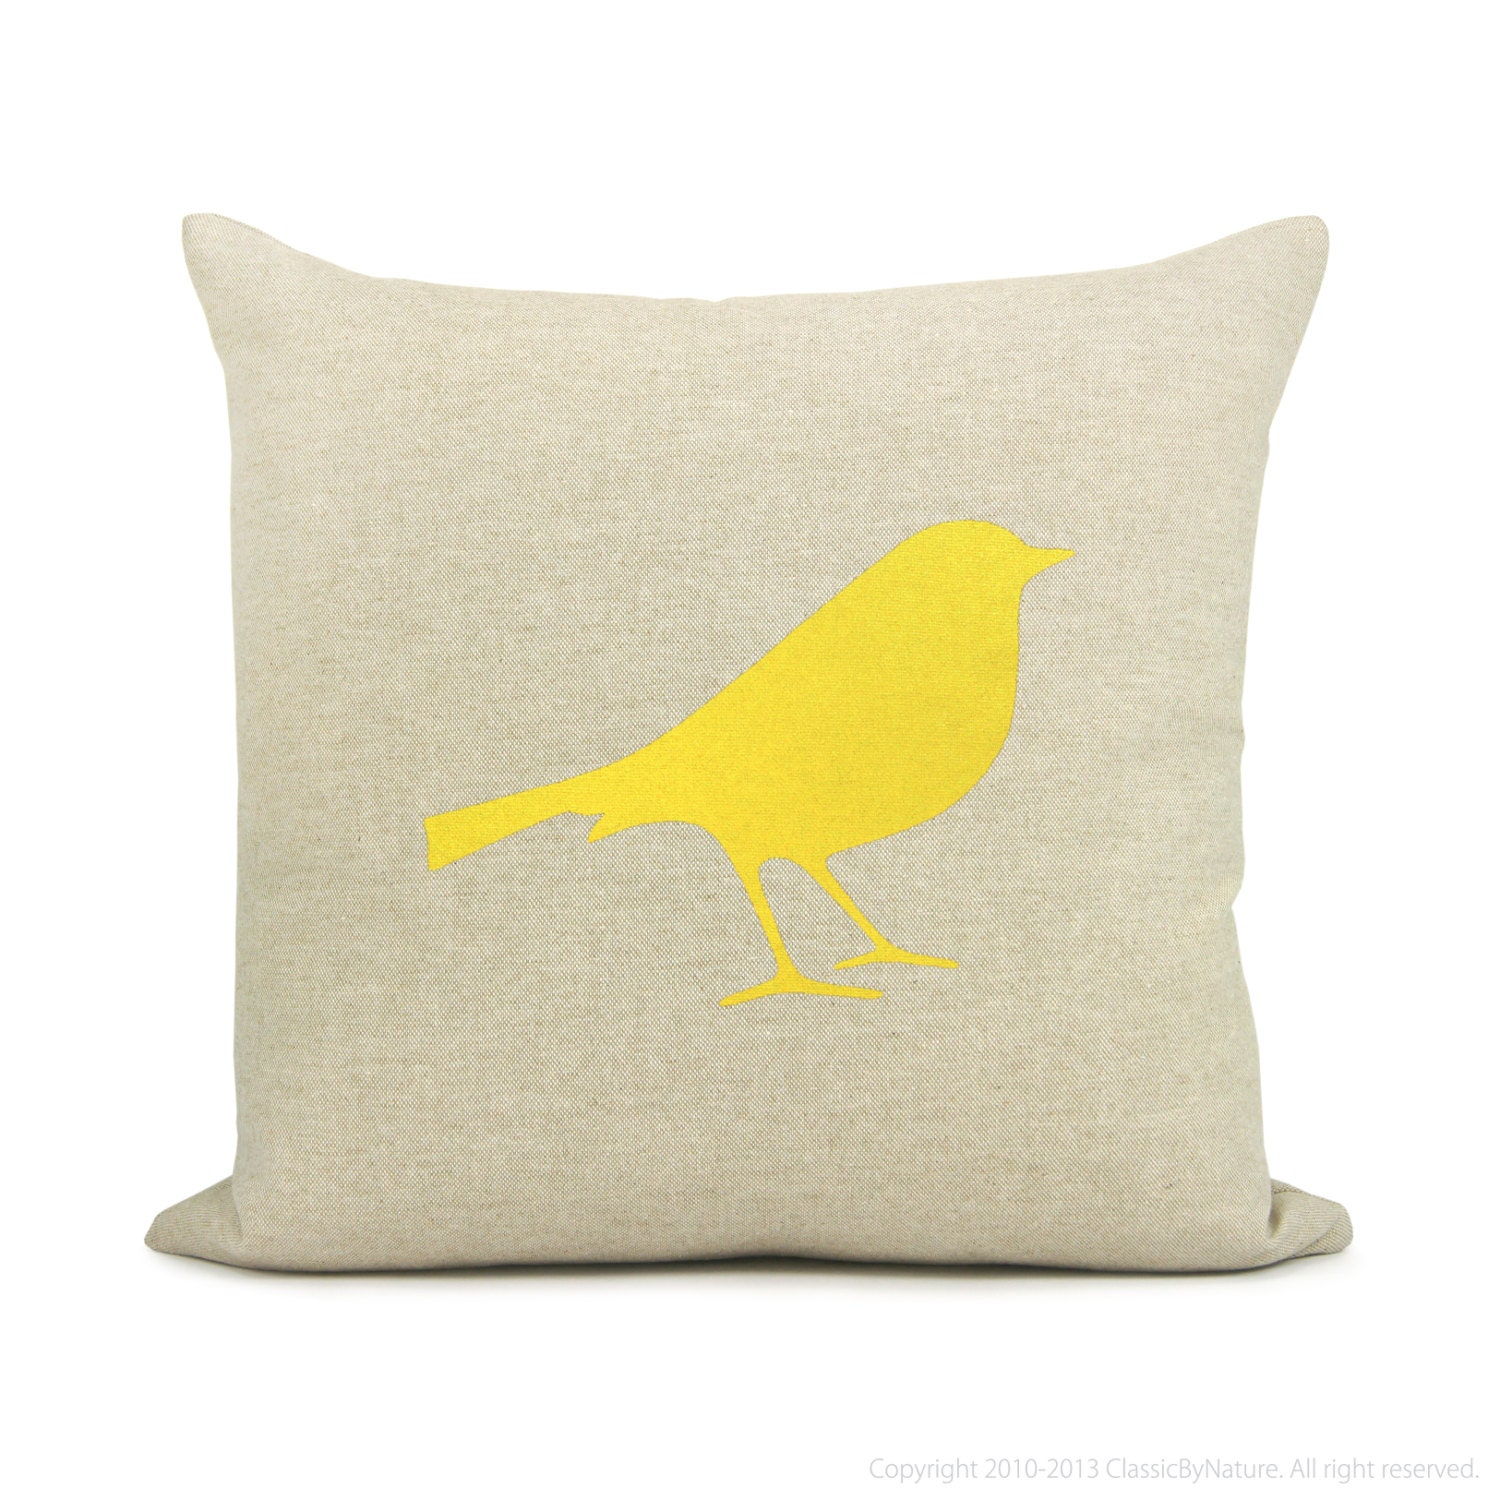 Decorative Pillows For Couch Etsy : Kitchen & Dining